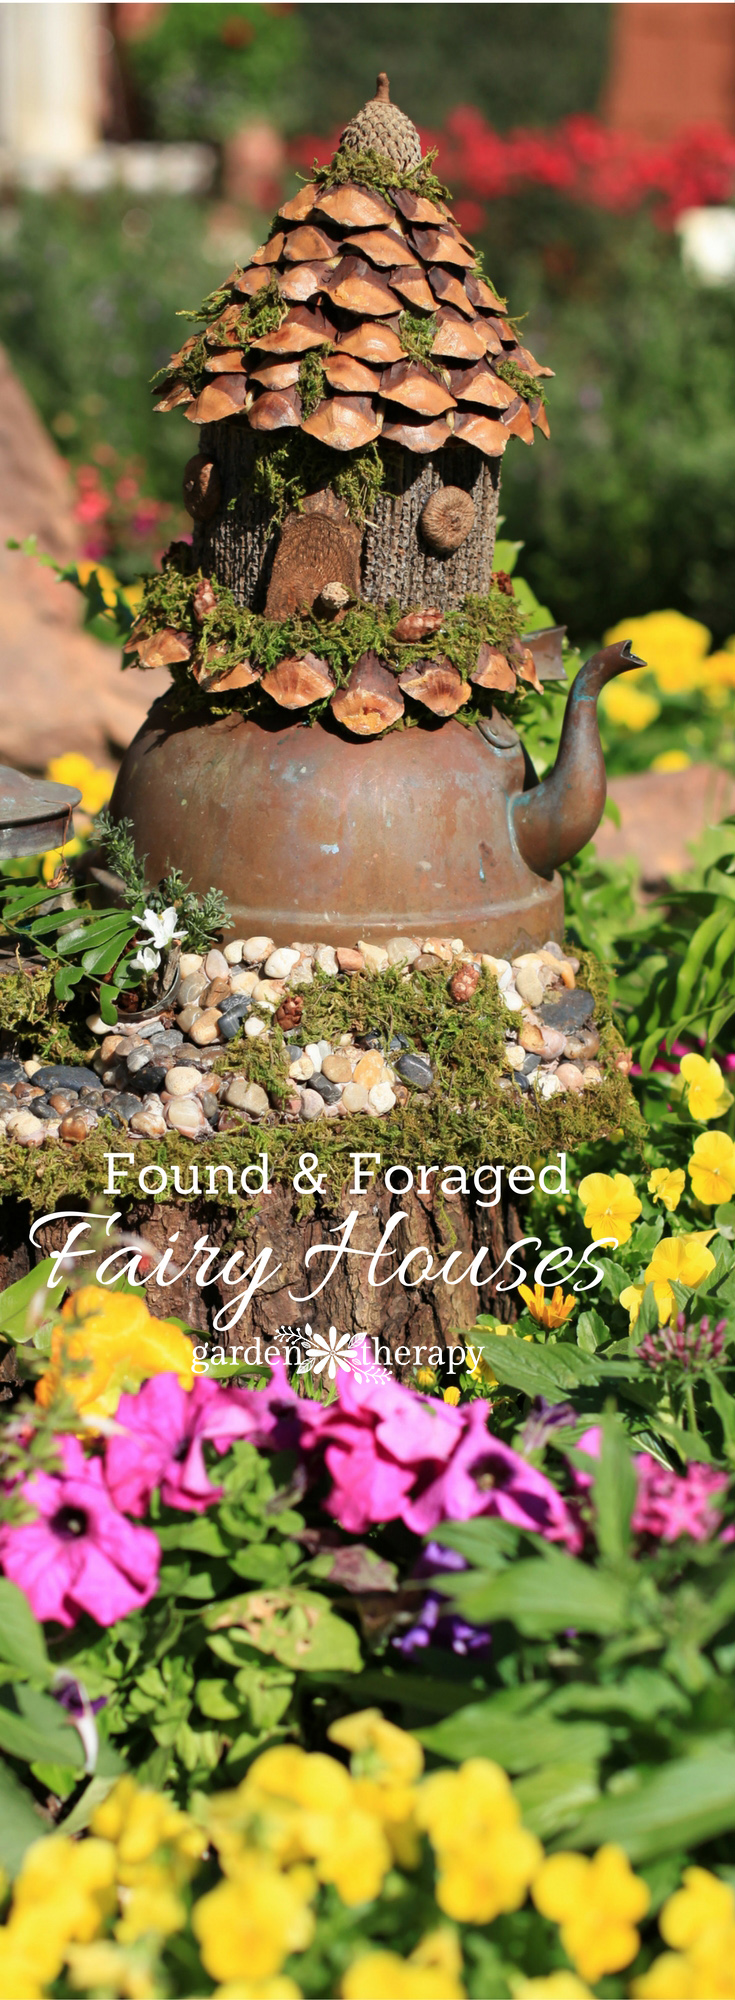 Rousing How To Make A Foraged Fairy House Inspiration Gallery Whimsical Foraged Fairy Houses You Would Think Were Actually Made By Fairy House Garden Ideas Fairy House Garden garden Fairy House Garden